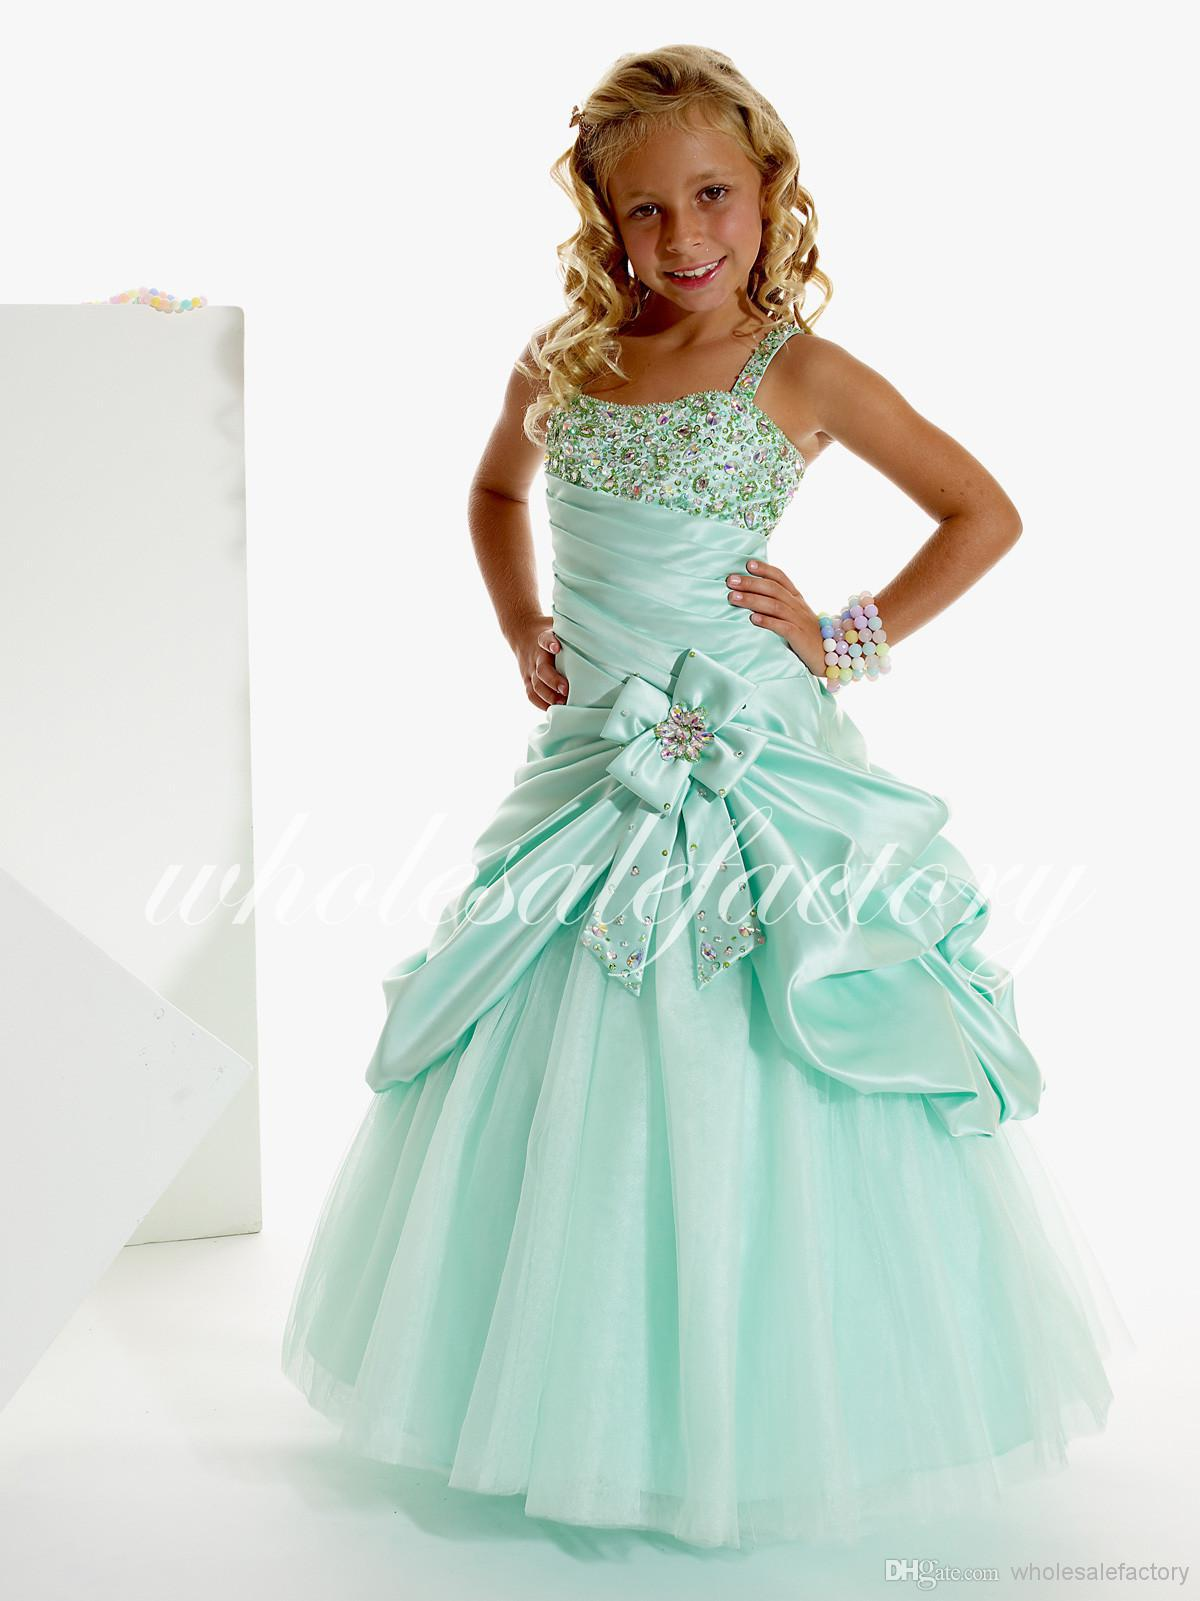 Birthday Dresses for 9 Year Olds | Dress images